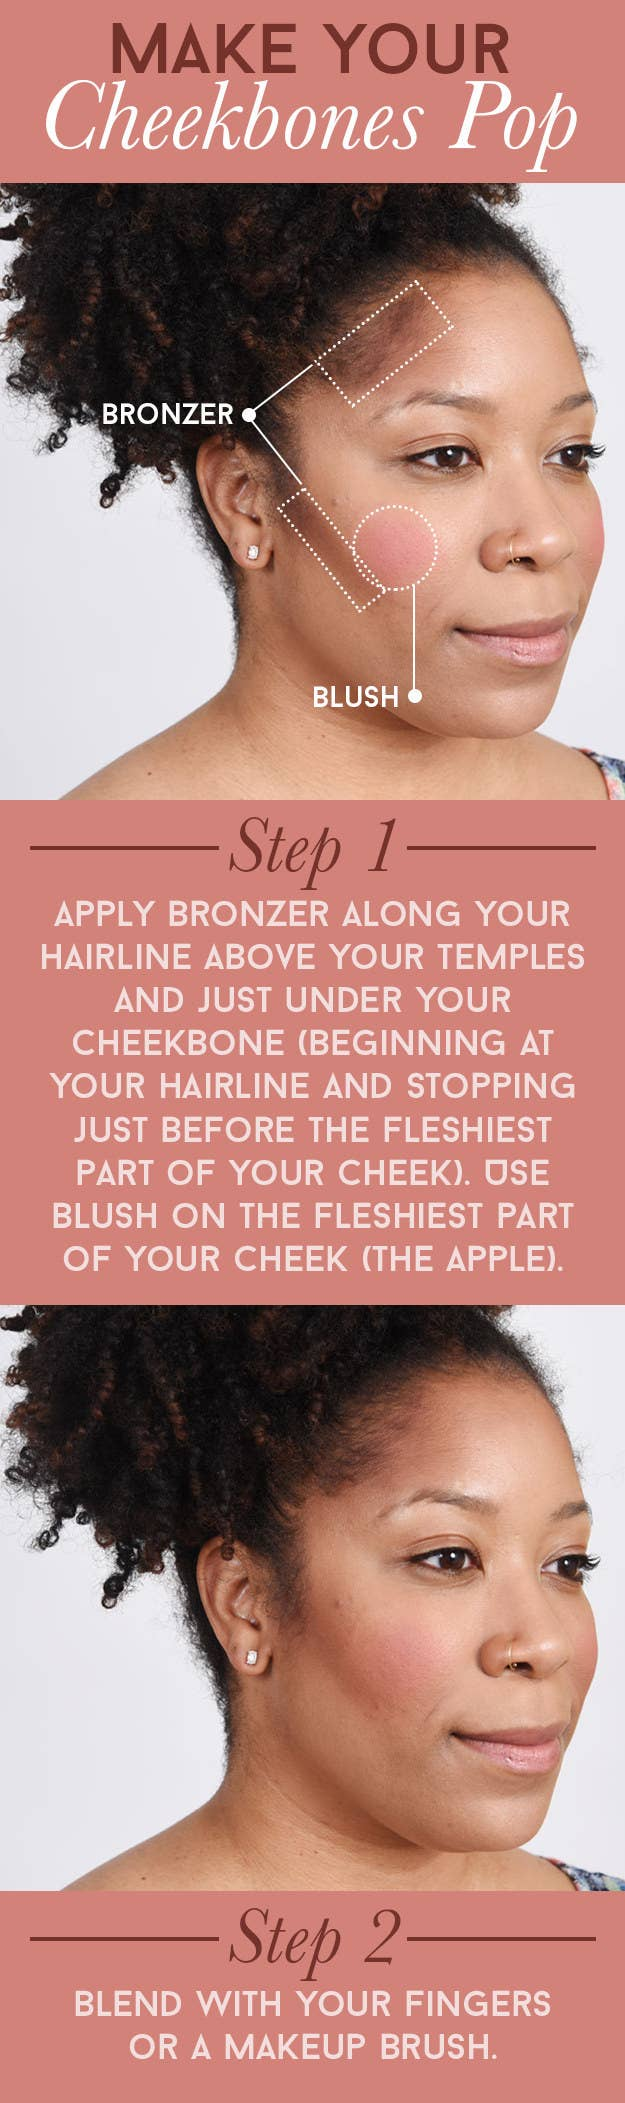 Blush Brightens Up The Face For A Naturally Flushed Look Bronzer Can Help  To Define